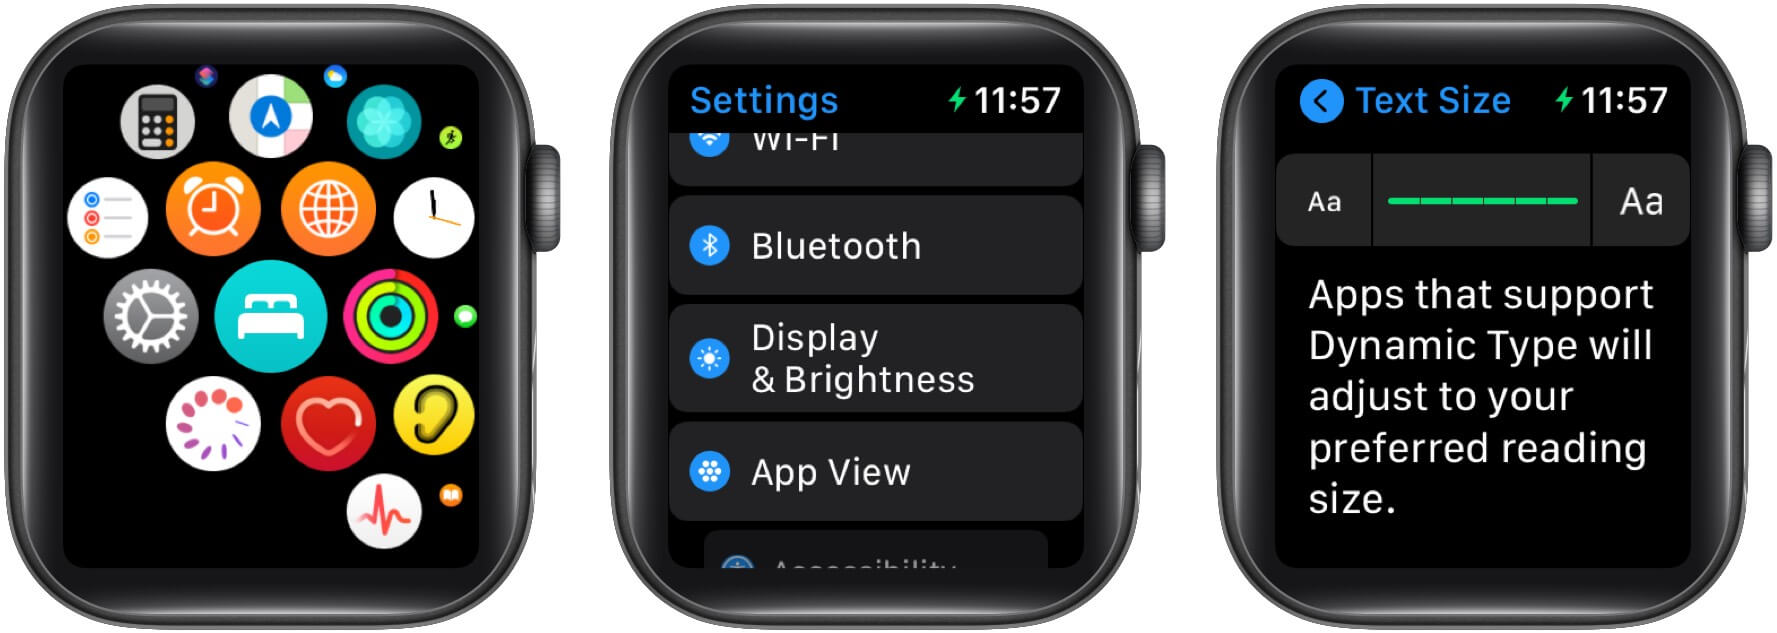 To increase text size using Apple Watch